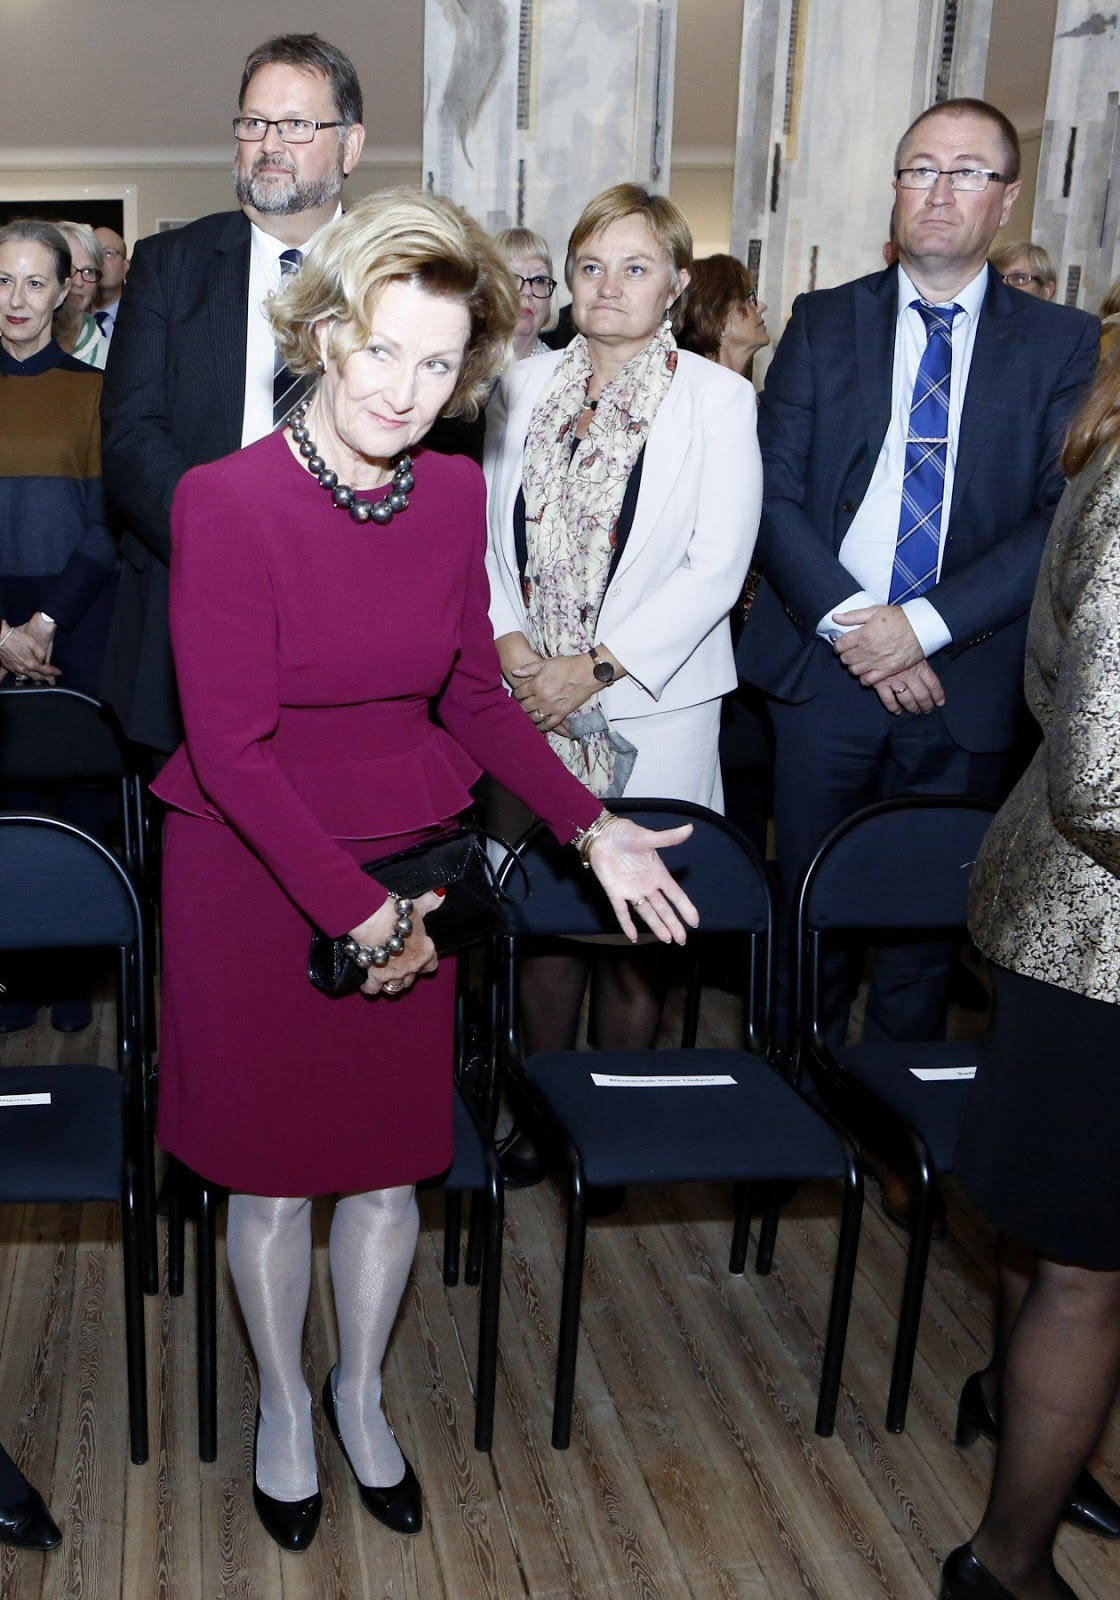 Queen Sonja wore a very elegant burgundy peplum styled dress.